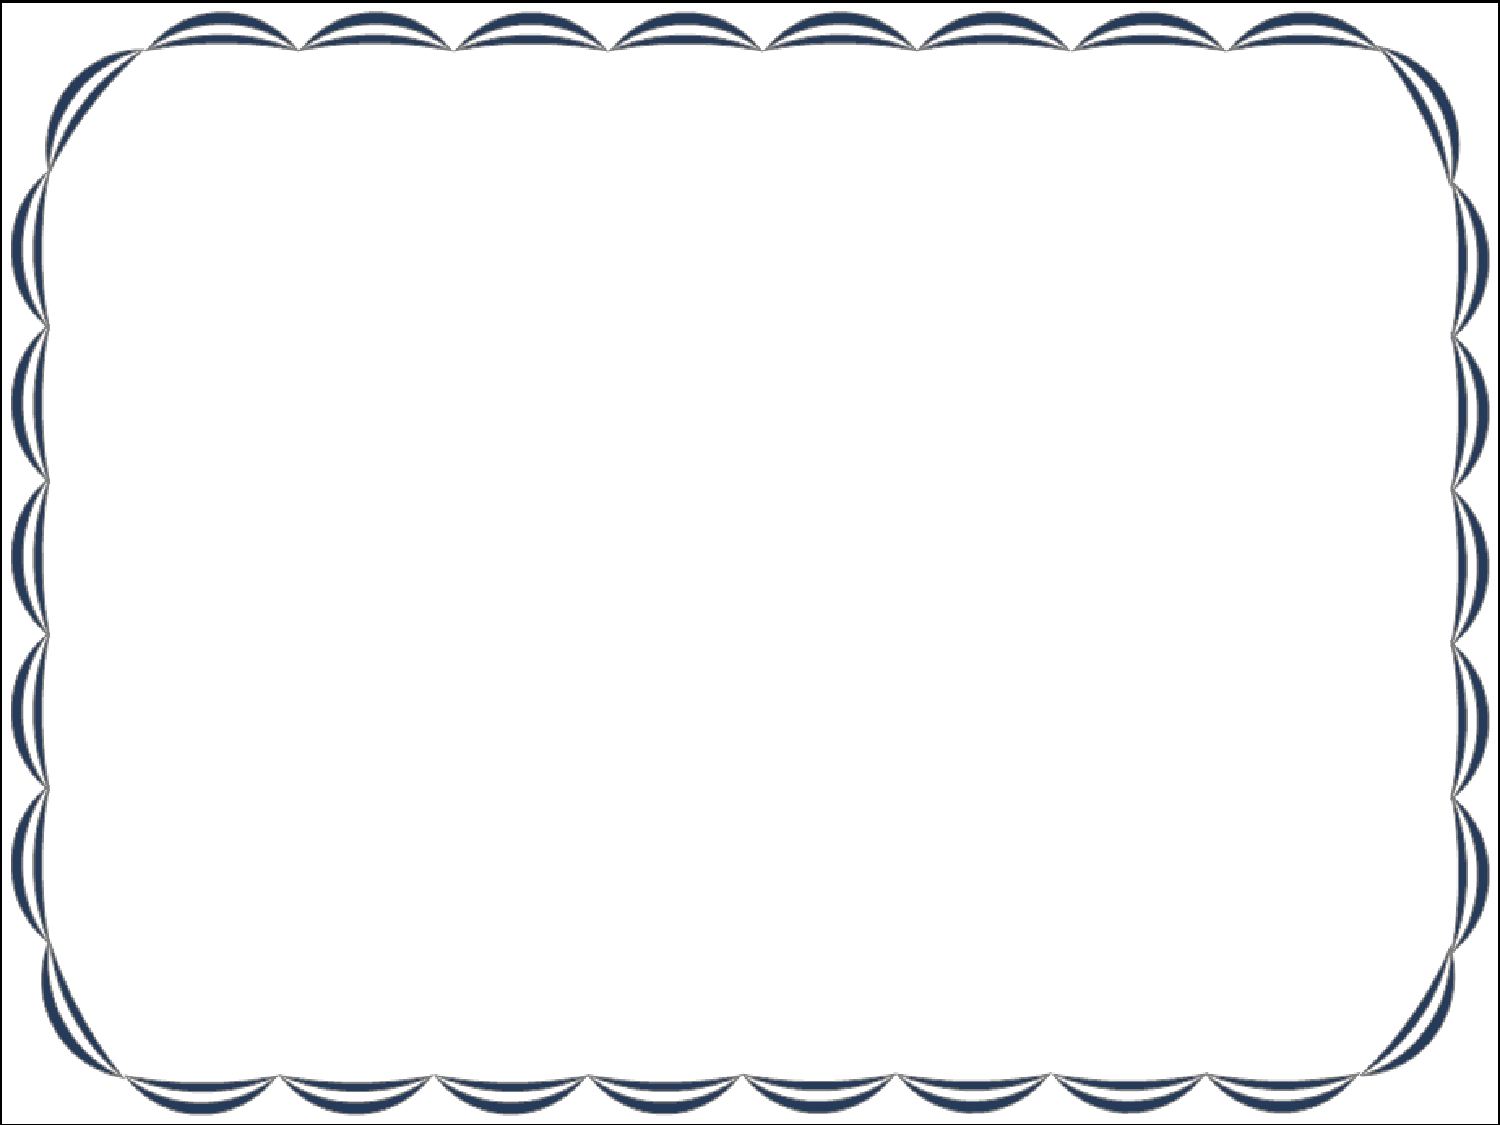 46 certificate border image . Free cliparts that you can download to ...